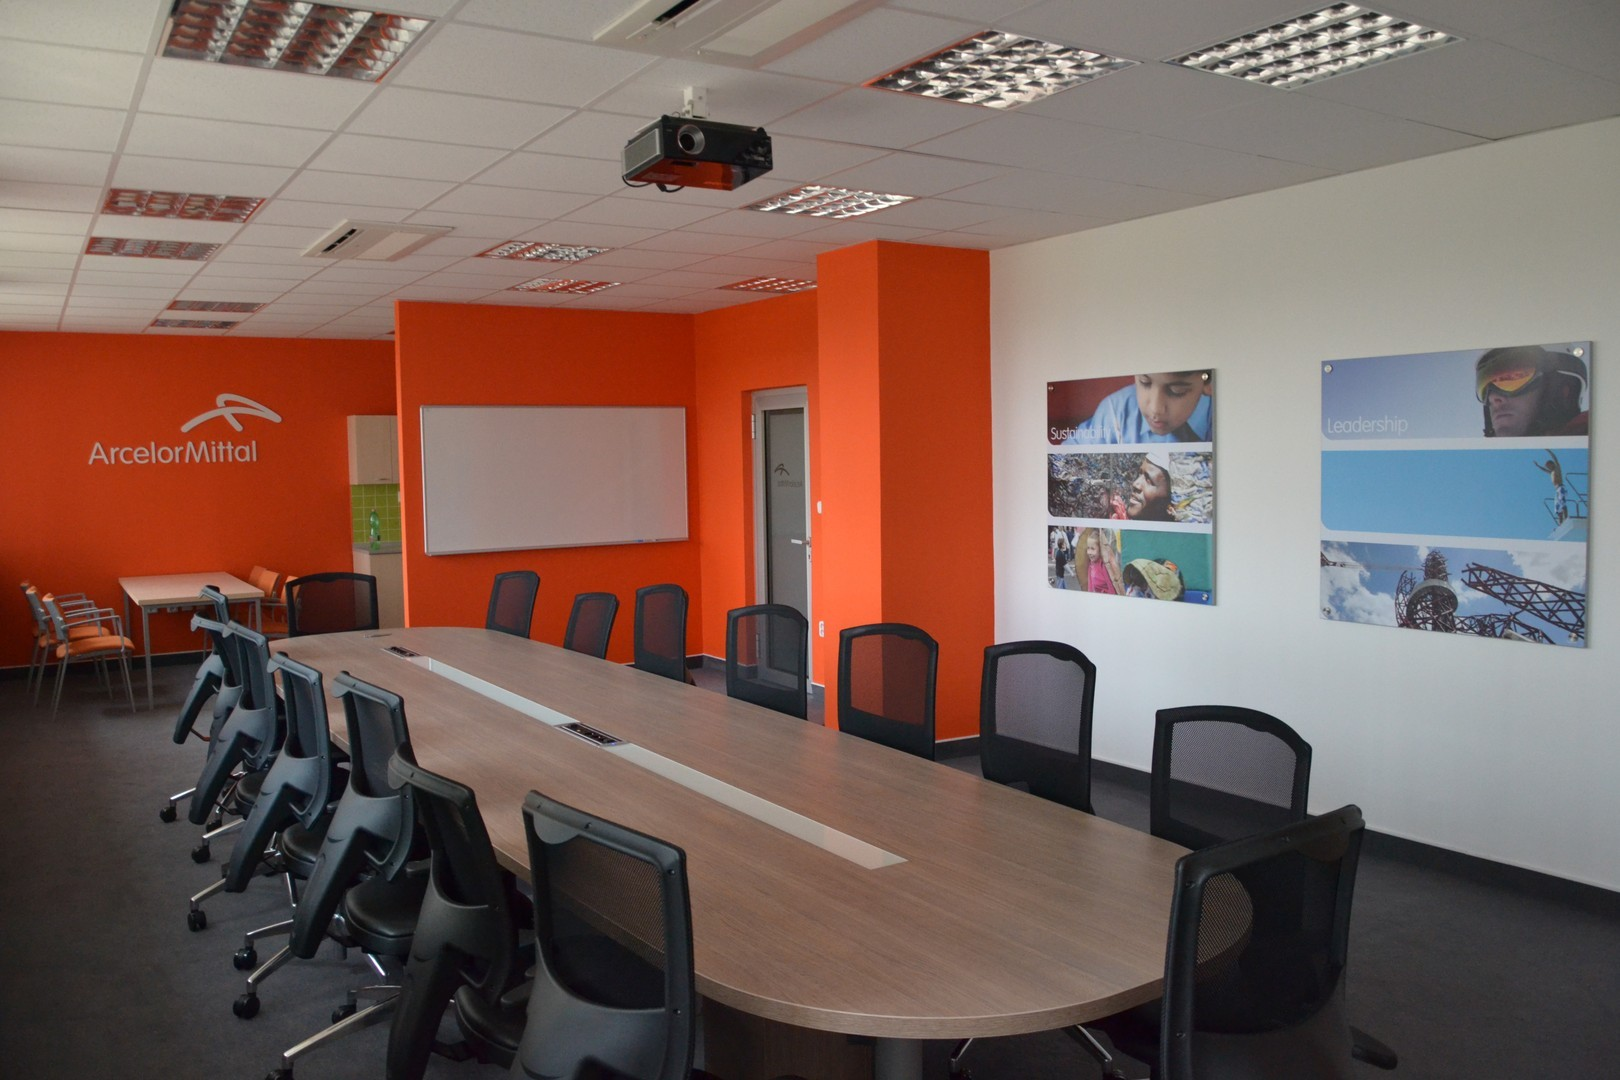 Attractive Sample Interior For The Company ArcelorMittal Design